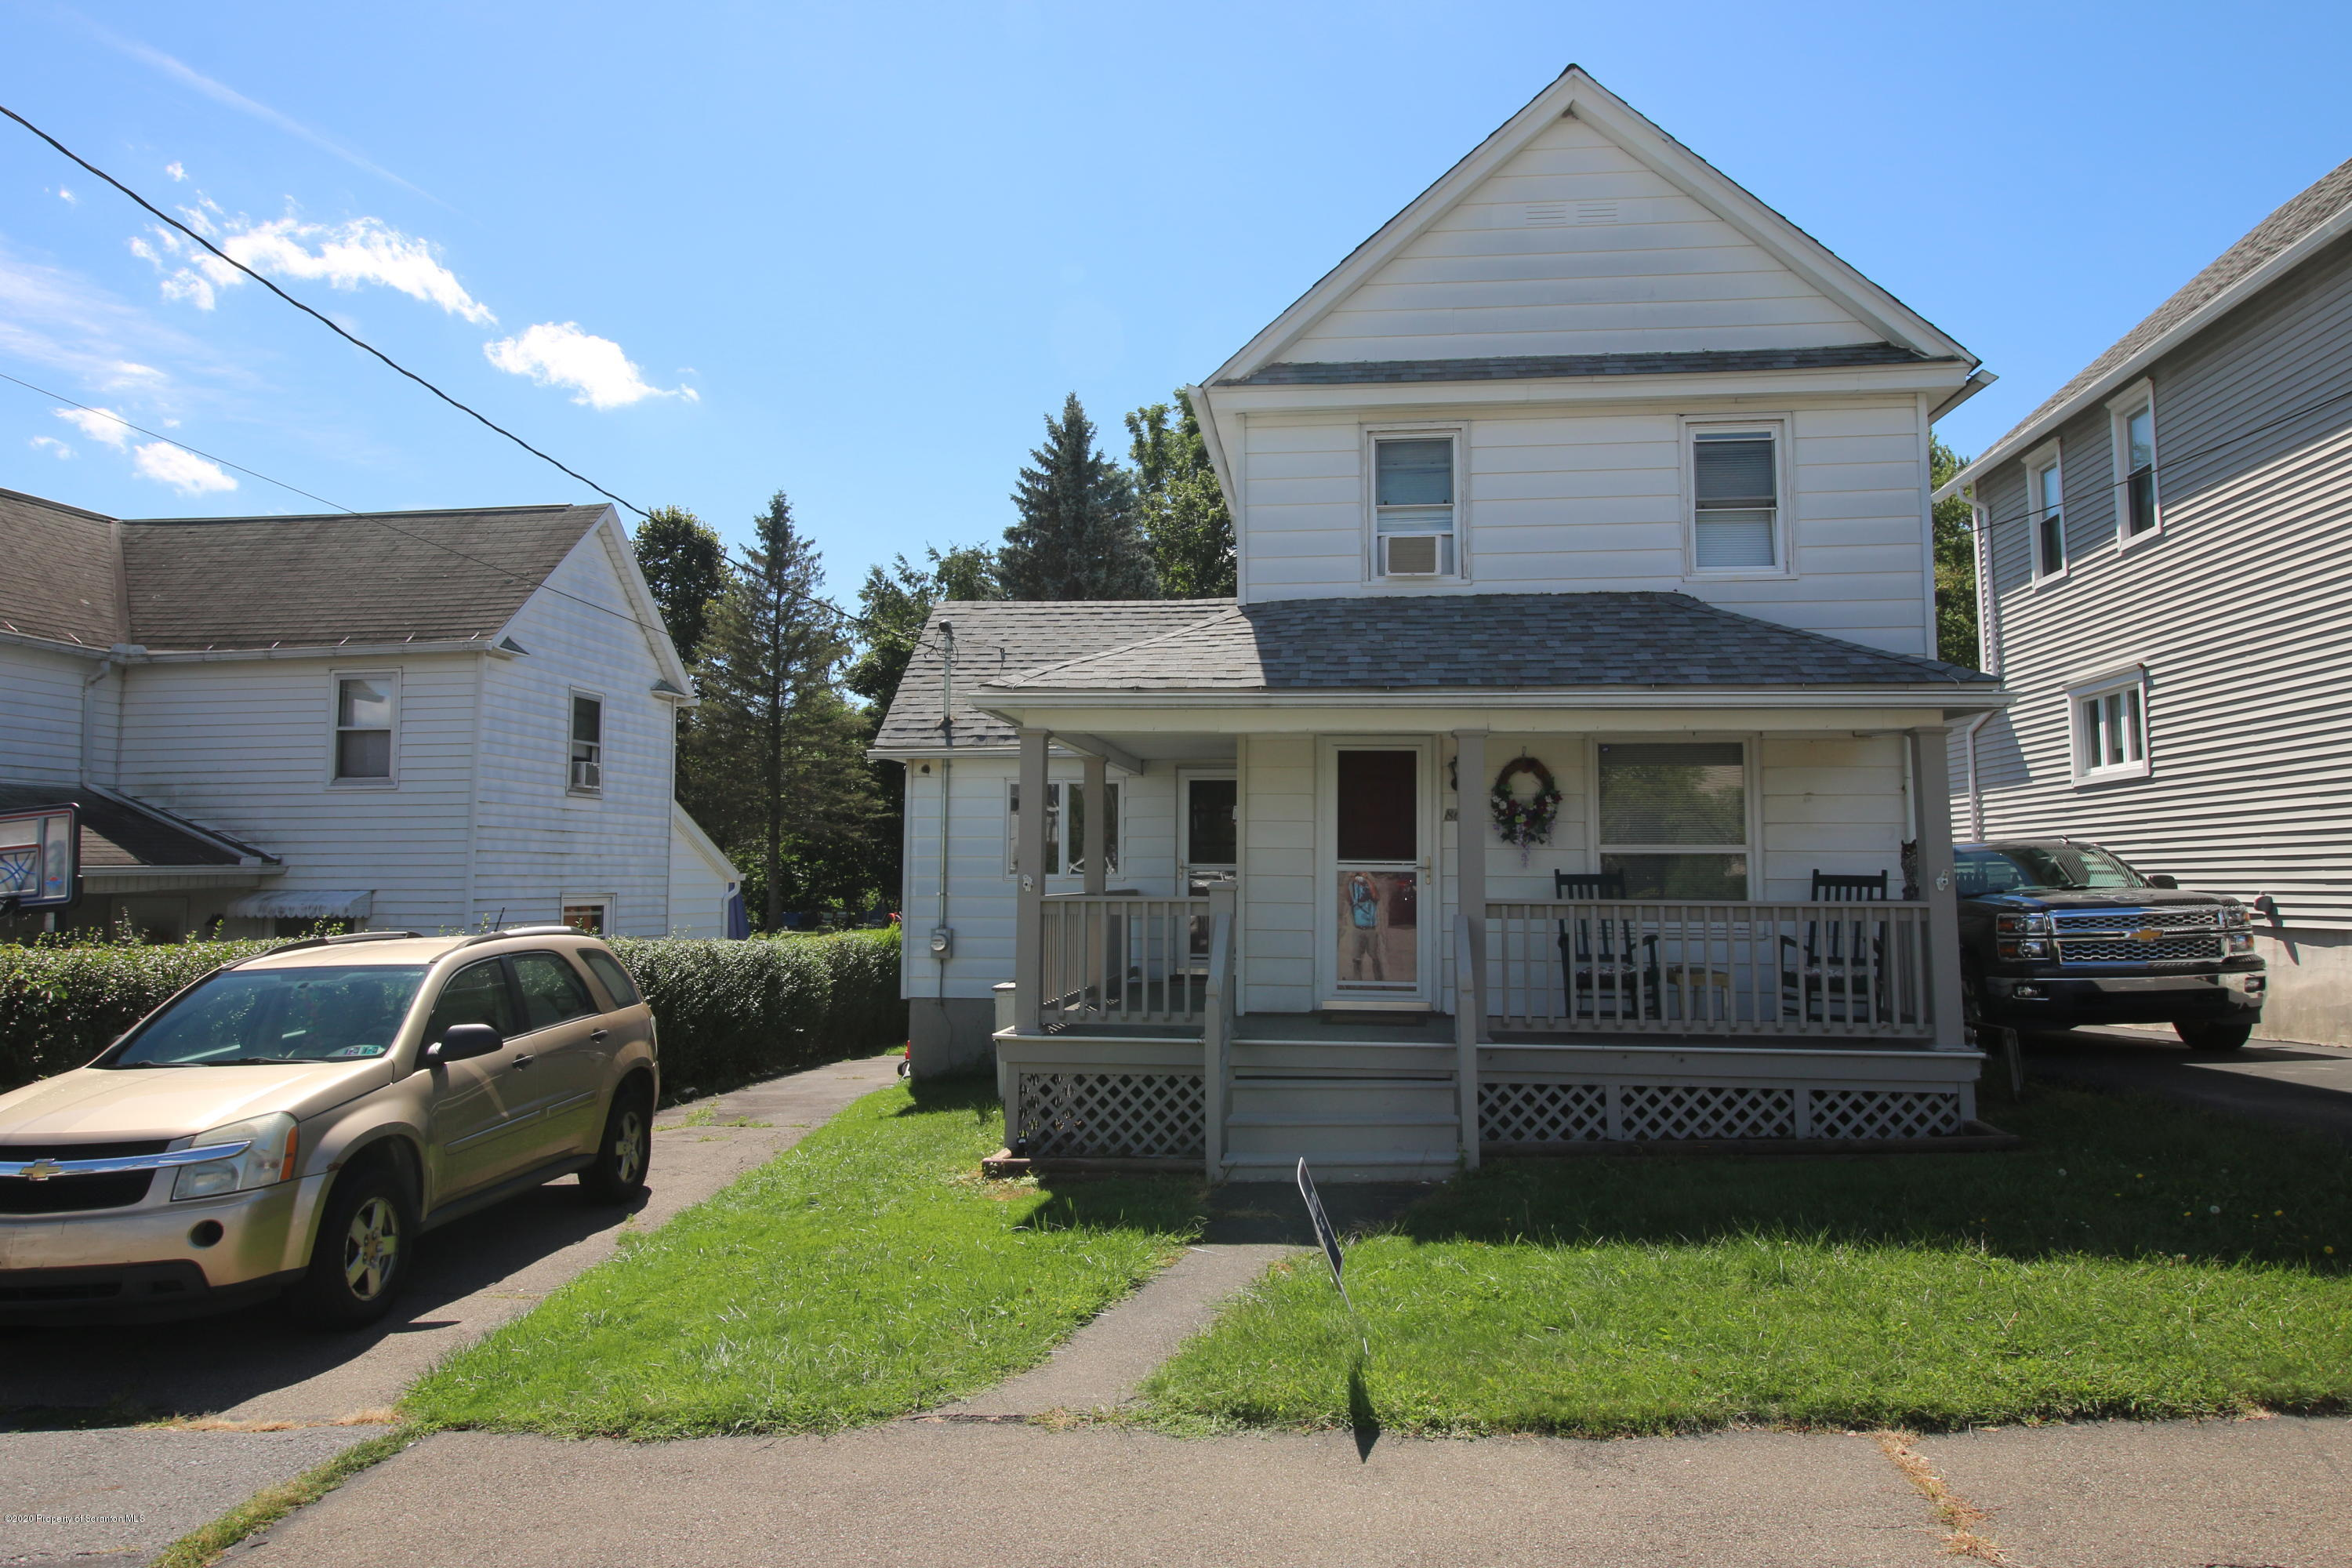 867 Price St, Dickson City, Pennsylvania 18519, 2 Bedrooms Bedrooms, 5 Rooms Rooms,1 BathroomBathrooms,Single Family,For Sale,Price,20-3657